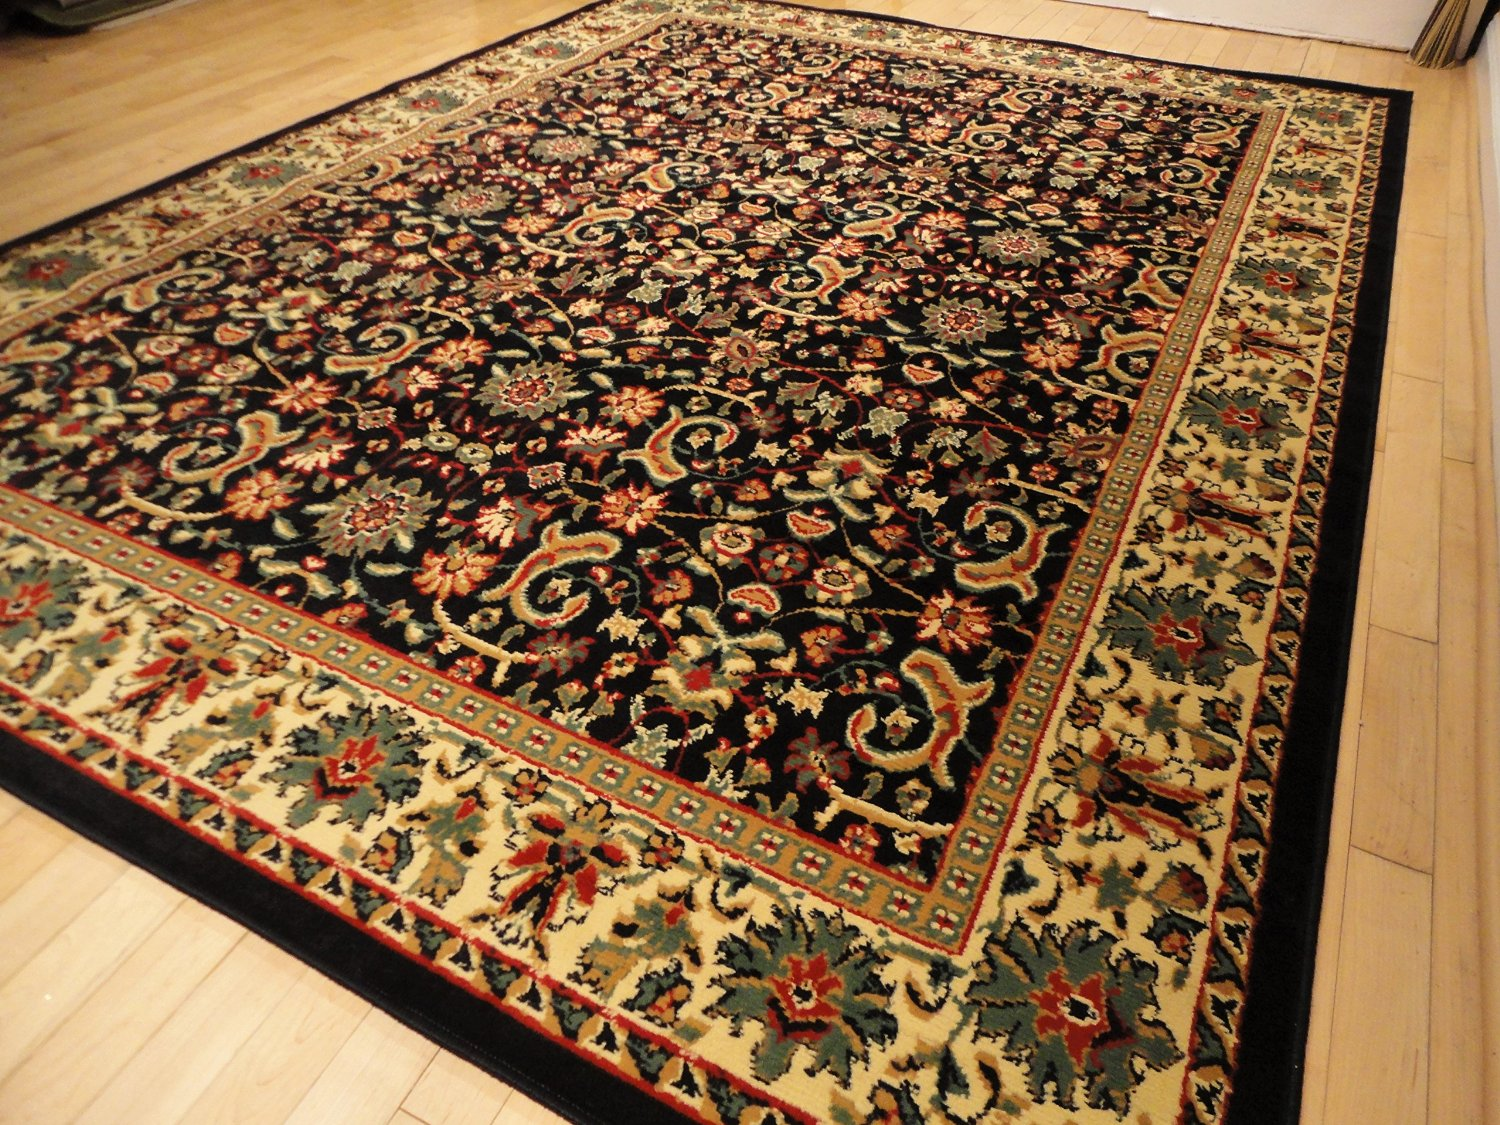 Buy Black Traditional Rug Large 8x11 Area Rugs Black Persian 8x10